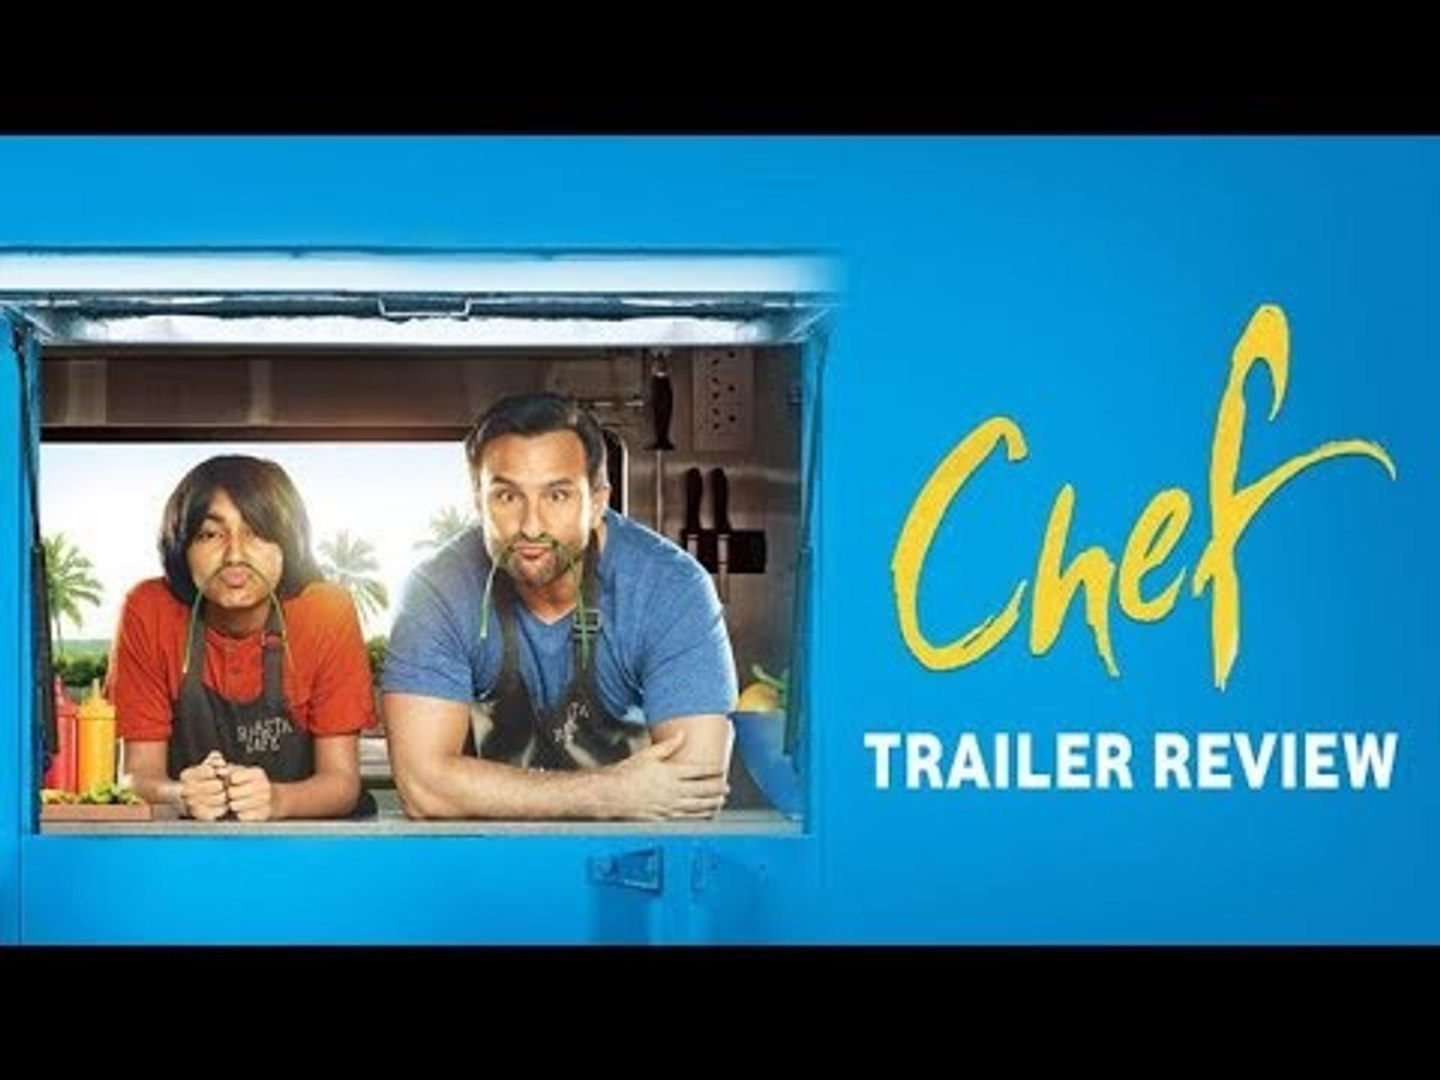 Saif Ali Khan's 'Chef' Trailer Review | Chef Trailer | Chef Movie Trailer Review